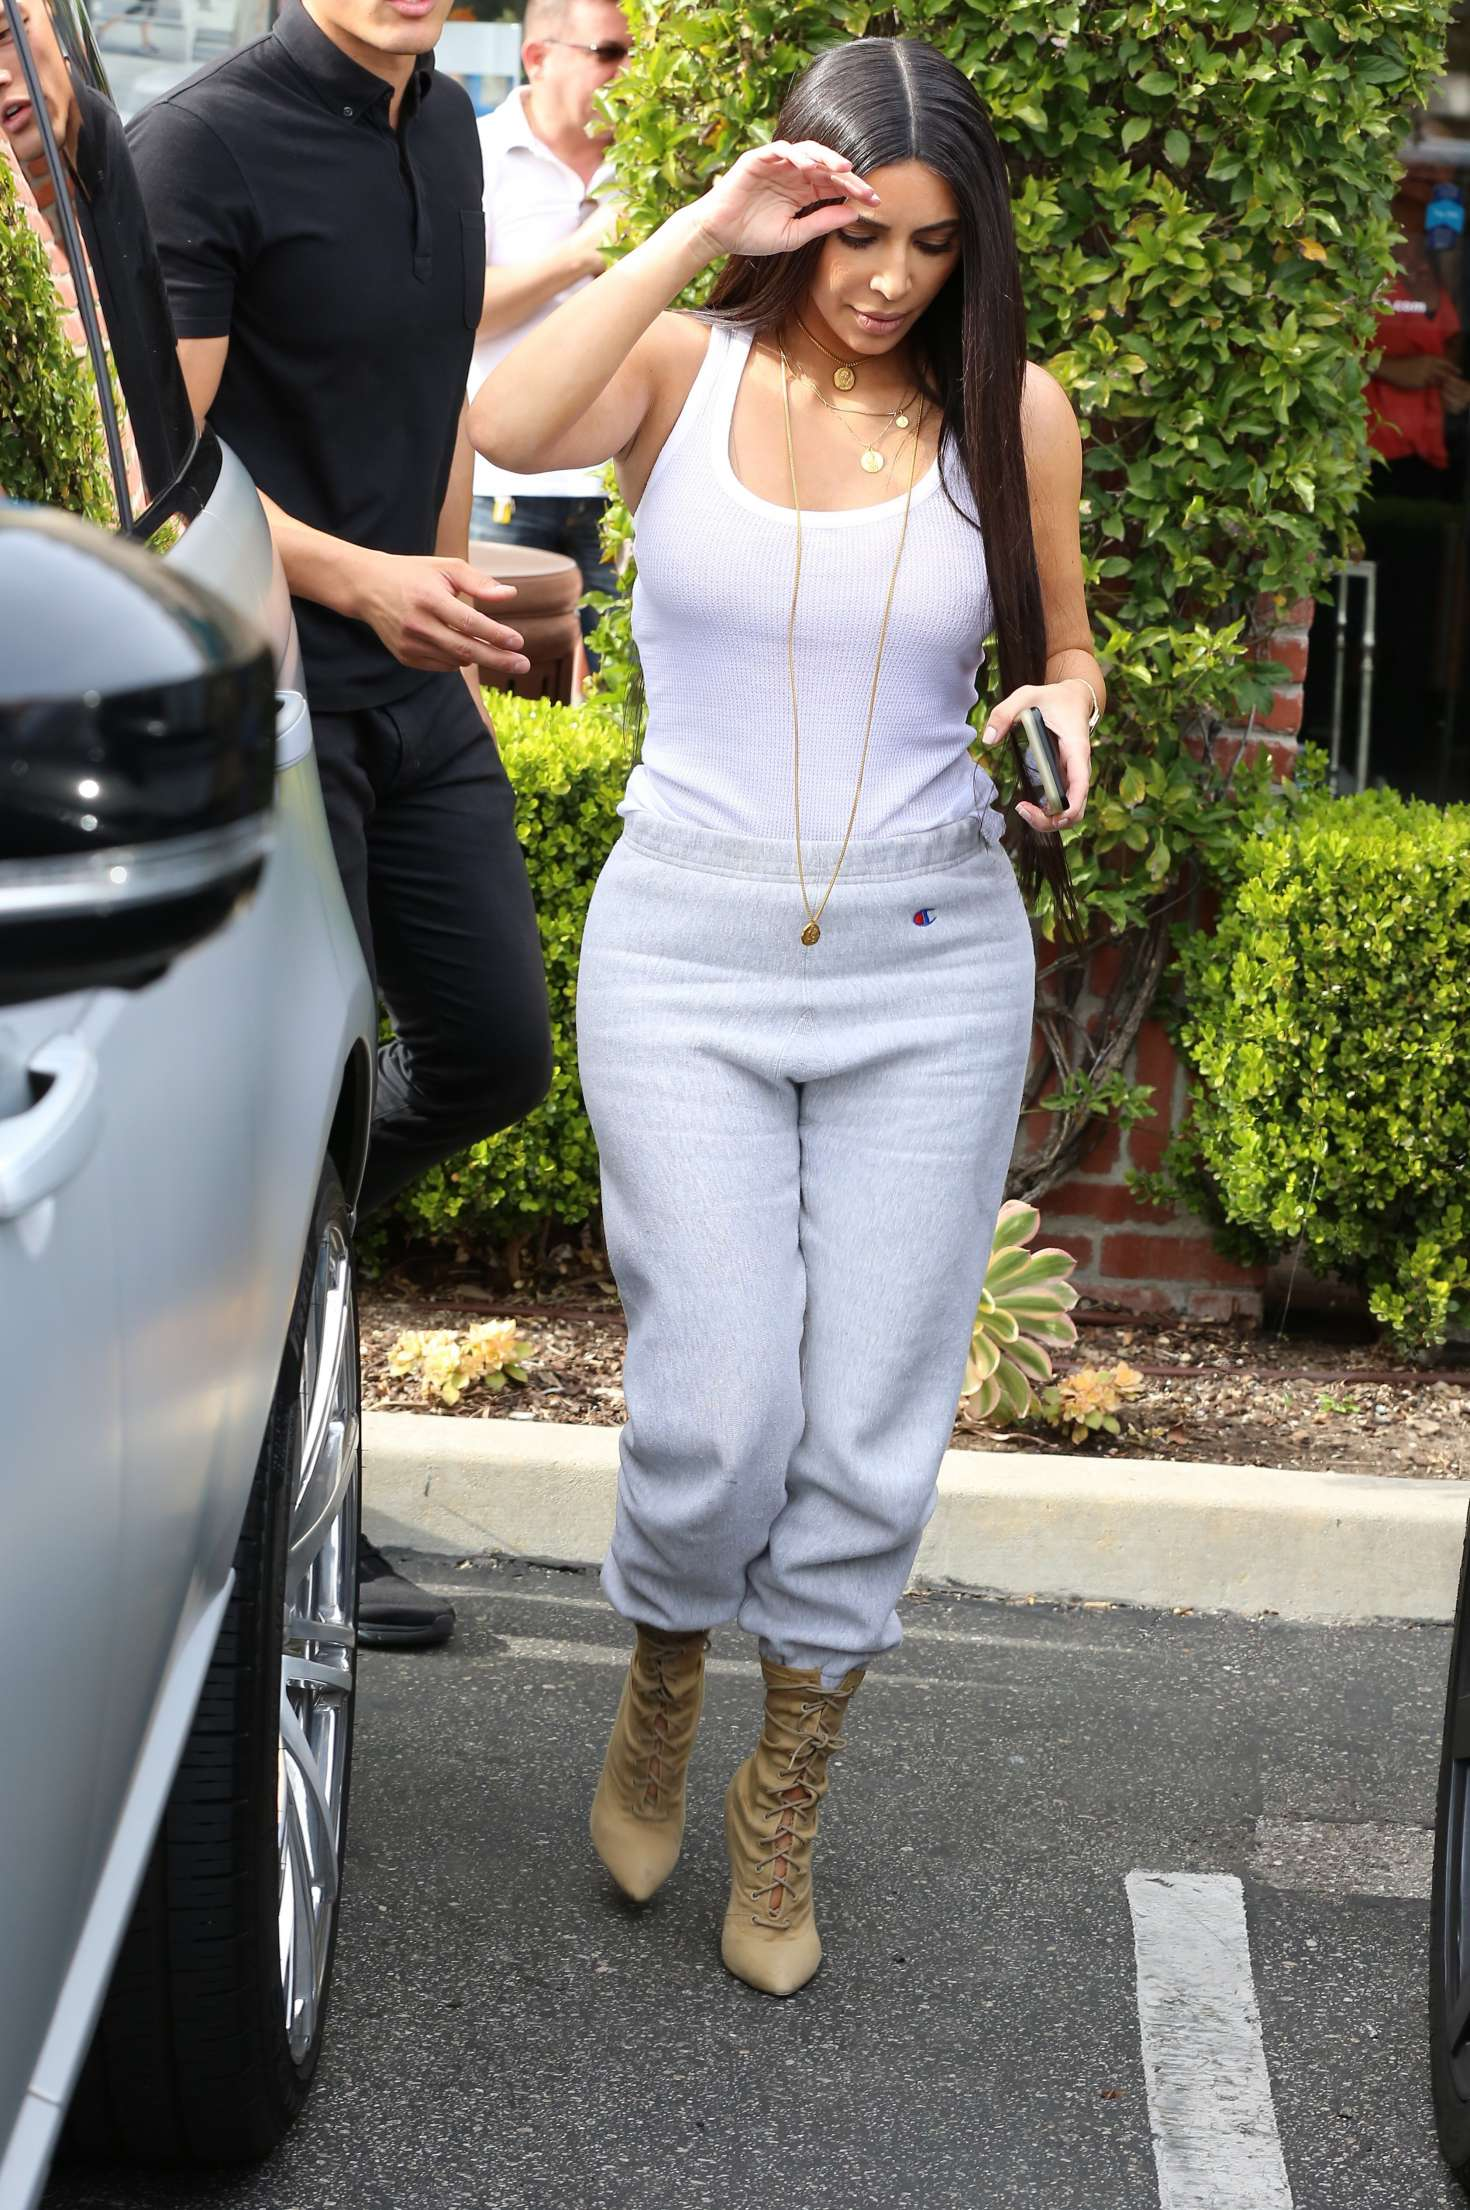 Kim Kardashian Out And About In Calabasas Indian Girls Villa Celebs Beauty Fashion And